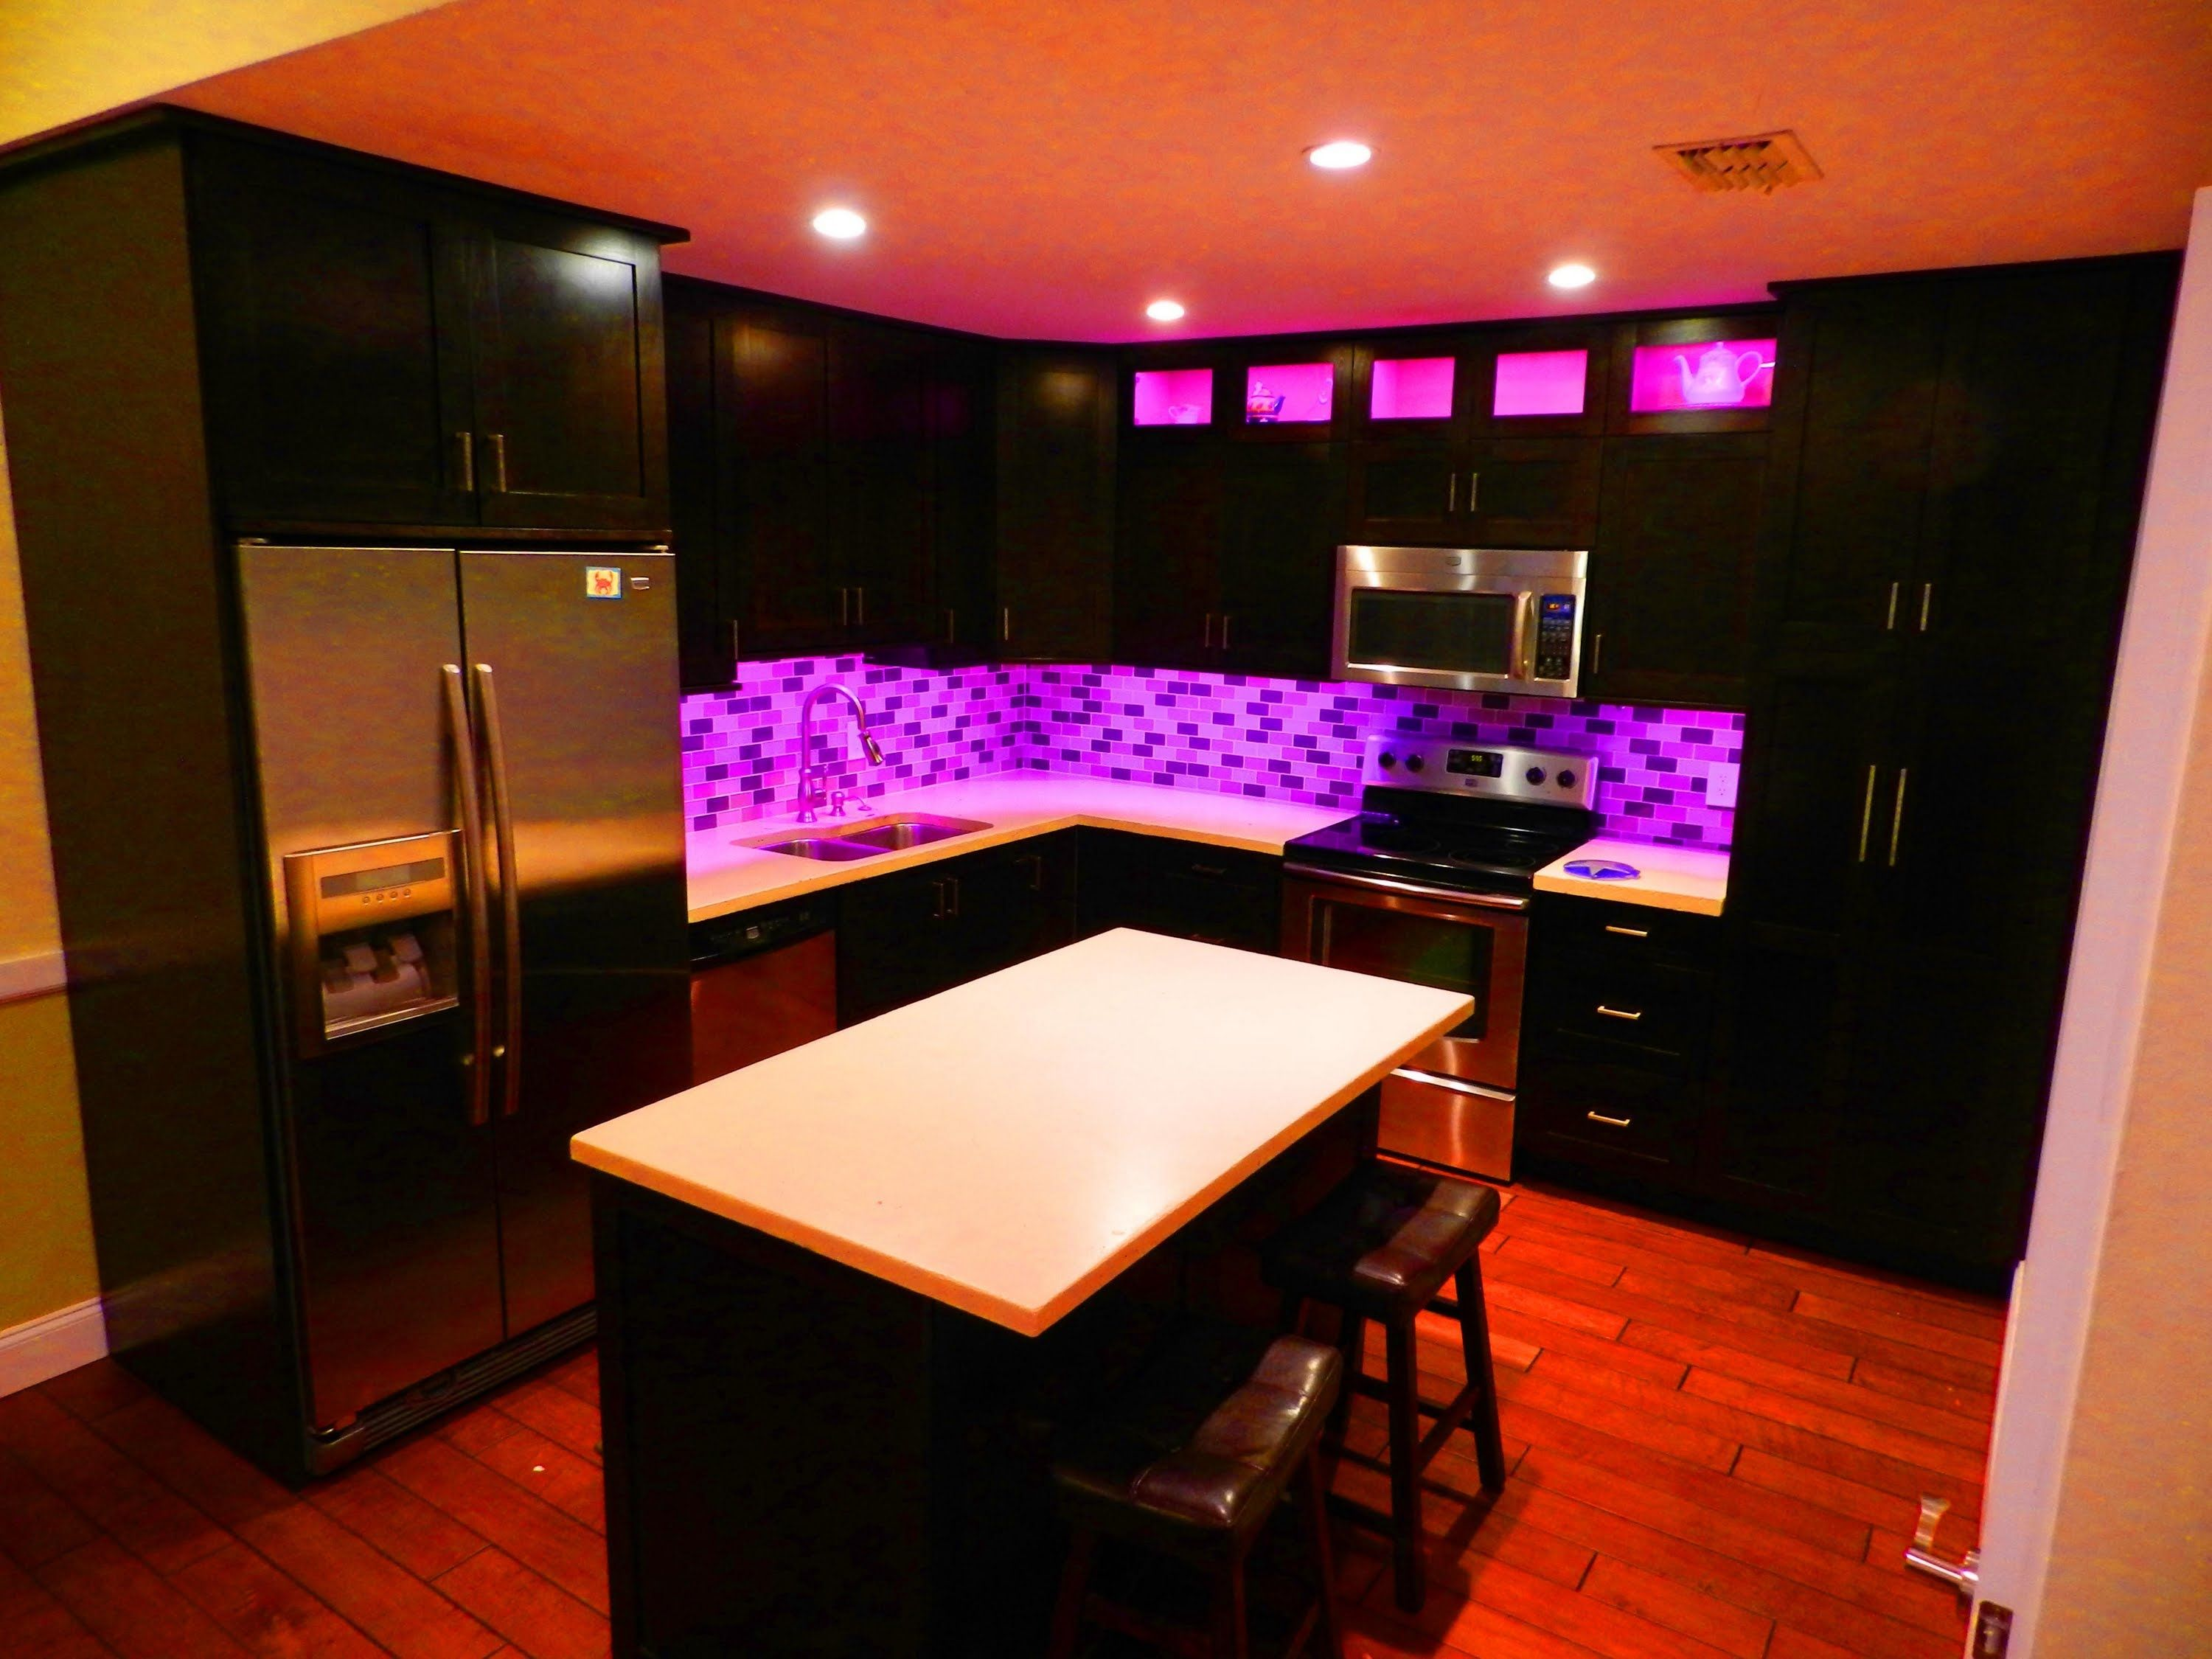 How To Install Color Changing Led Lighting Led Under Cabinet Lighting Kitchen Led Lighting Under Cabinet Lighting